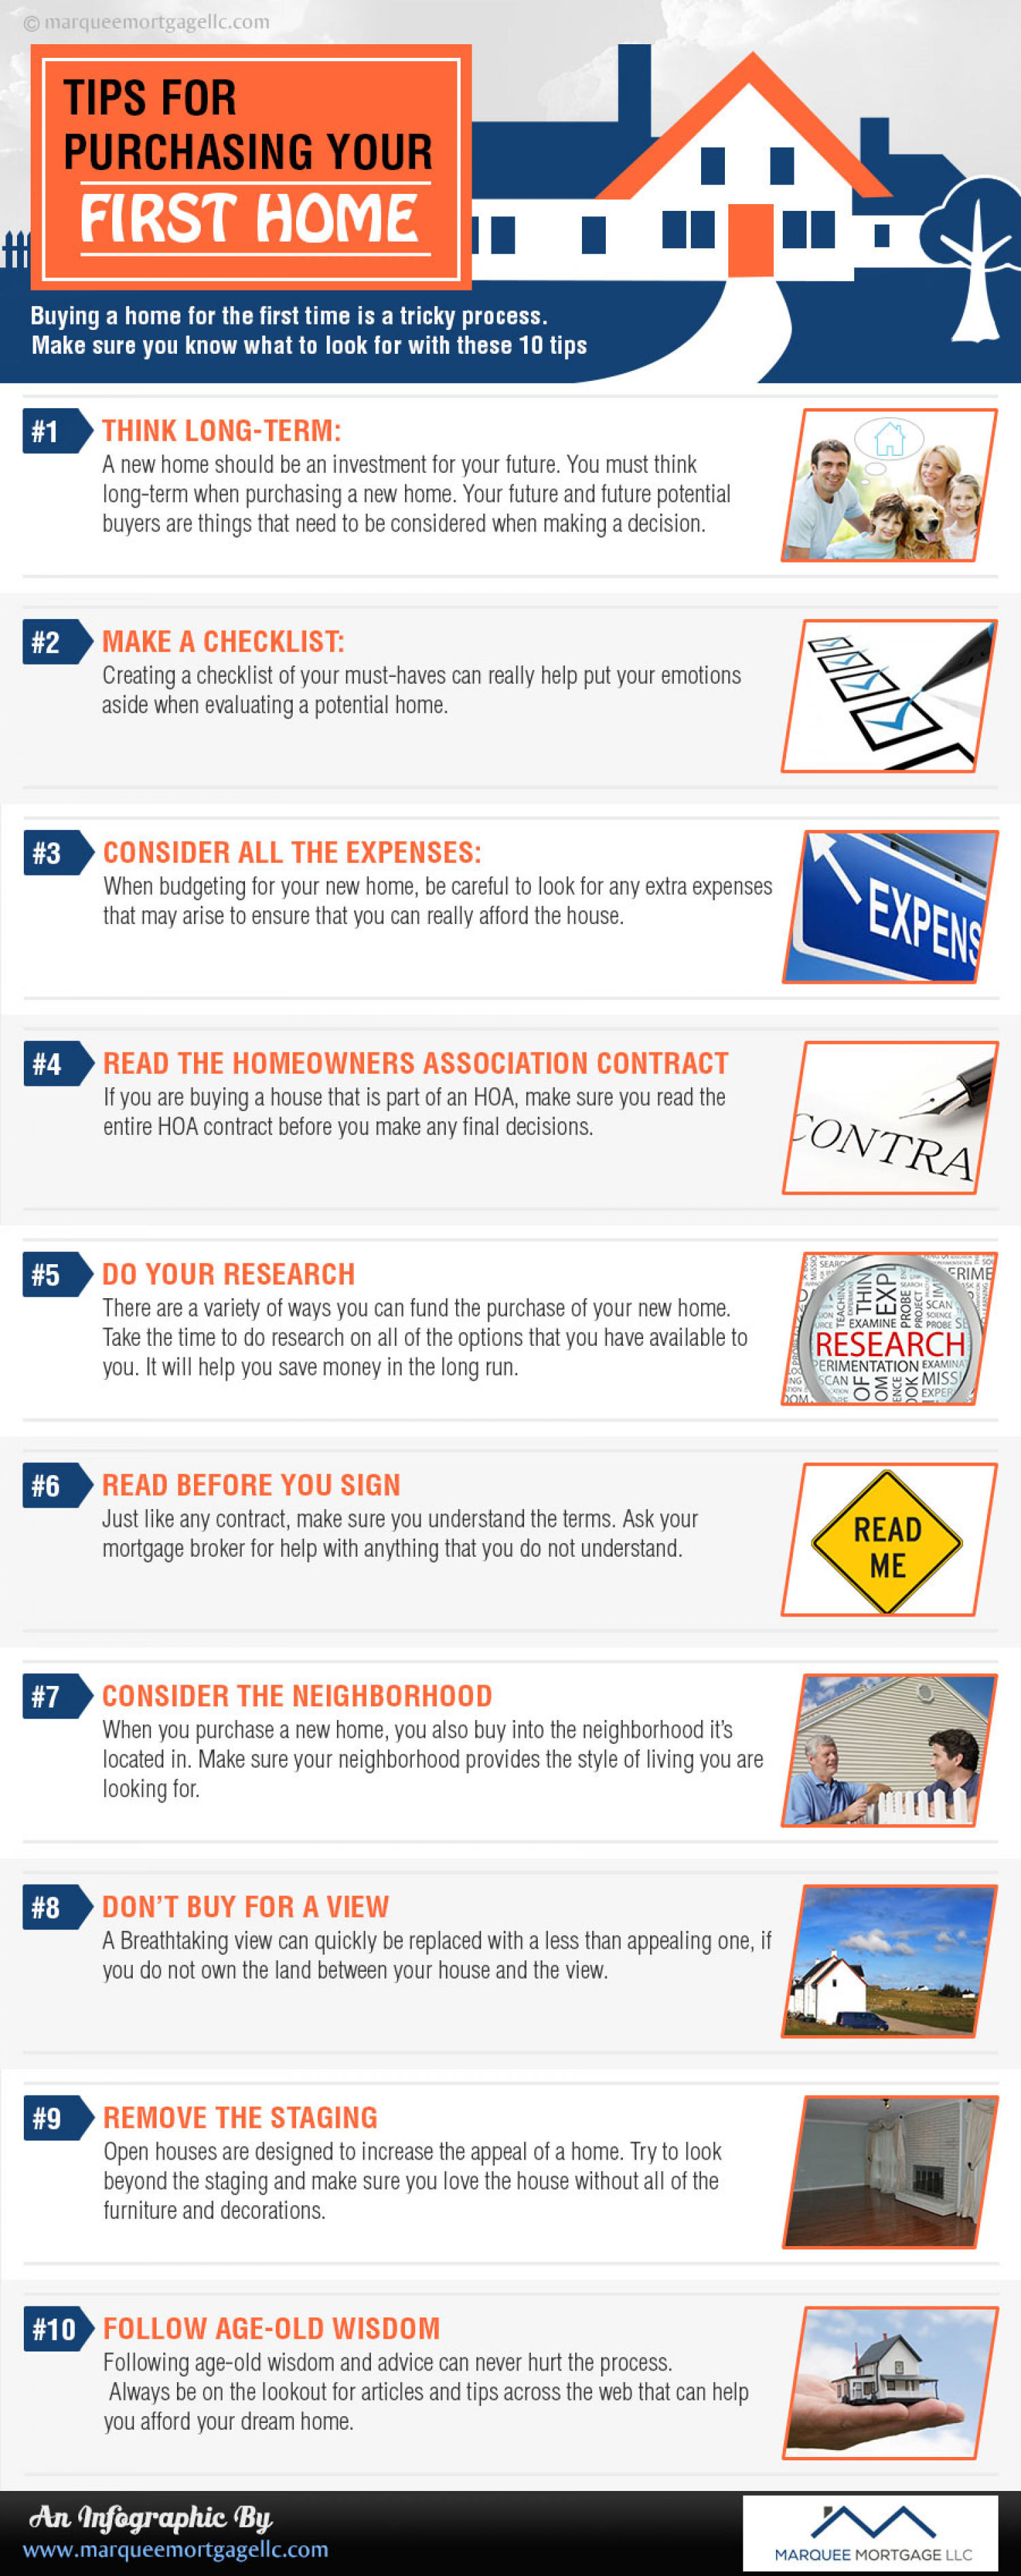 Tips for Purchasing Your First Home  Infographic